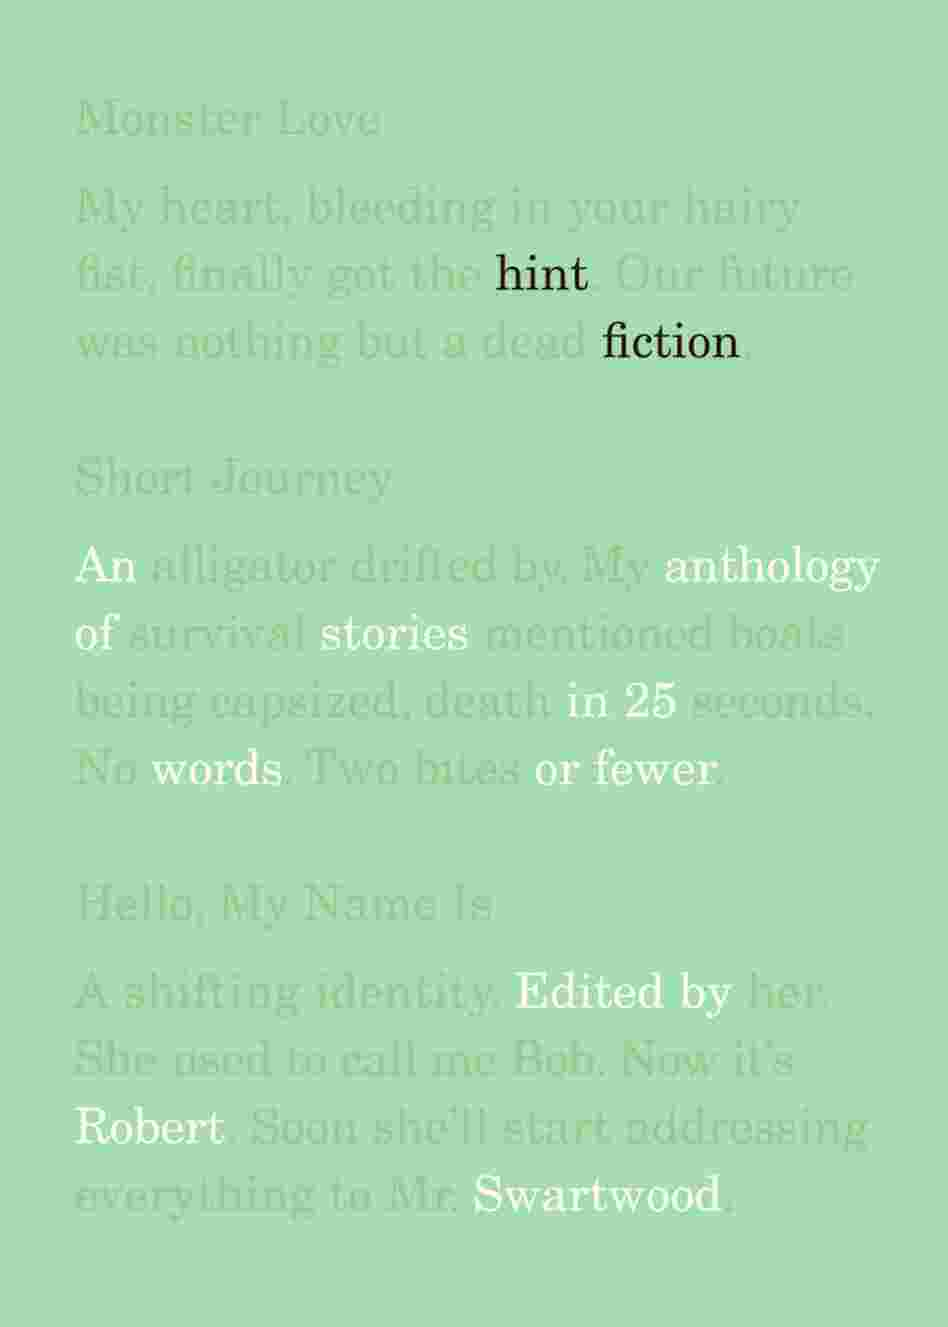 'Hint Fiction'